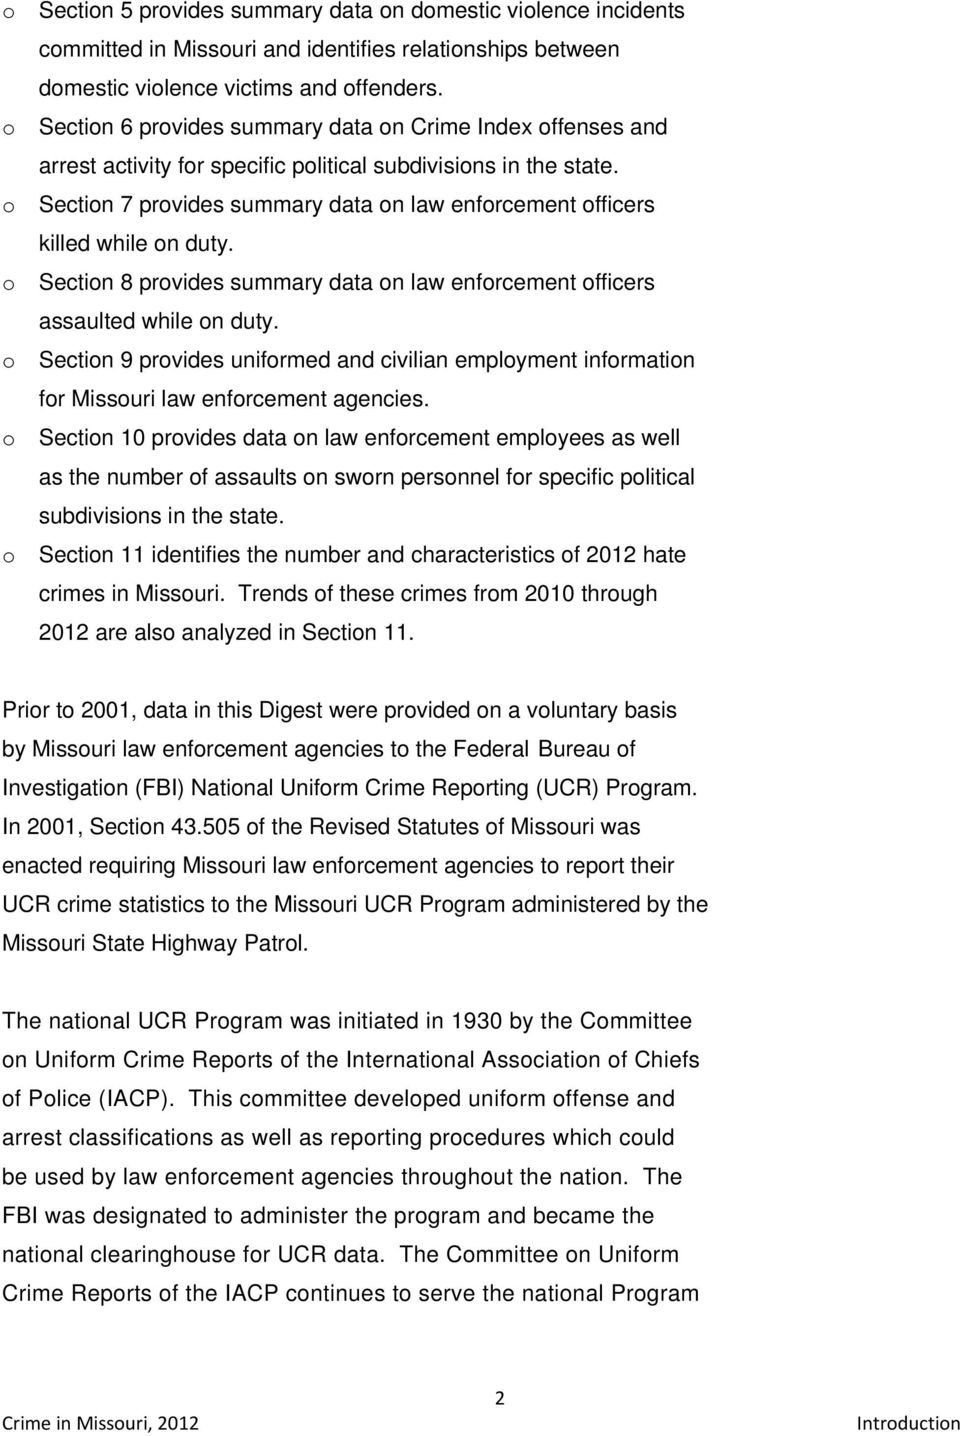 Section 7 provides summary data on law enforcement officers killed while on duty. Section 8 provides summary data on law enforcement officers assaulted while on duty.